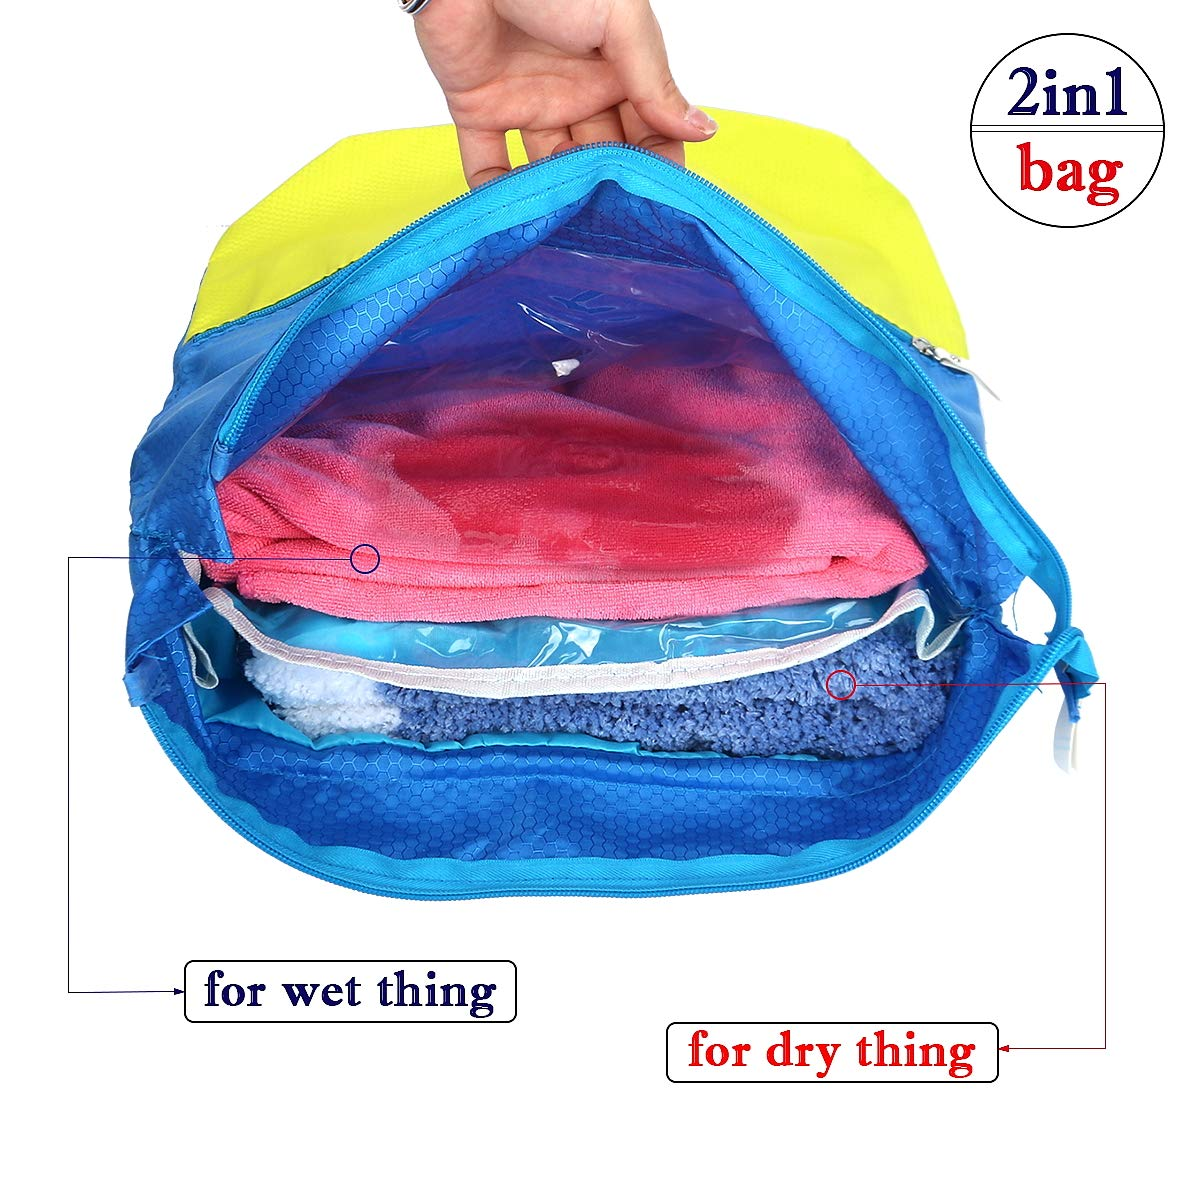 b4af1f099f1 Caeser Archy Swim Bag 2 In 1 Dry and Wet Clothes Separators Swimming  Outdoor School Gym Sports Bag Unisex Storage Bags for Adults and Kids -  Blue Yellow  ...